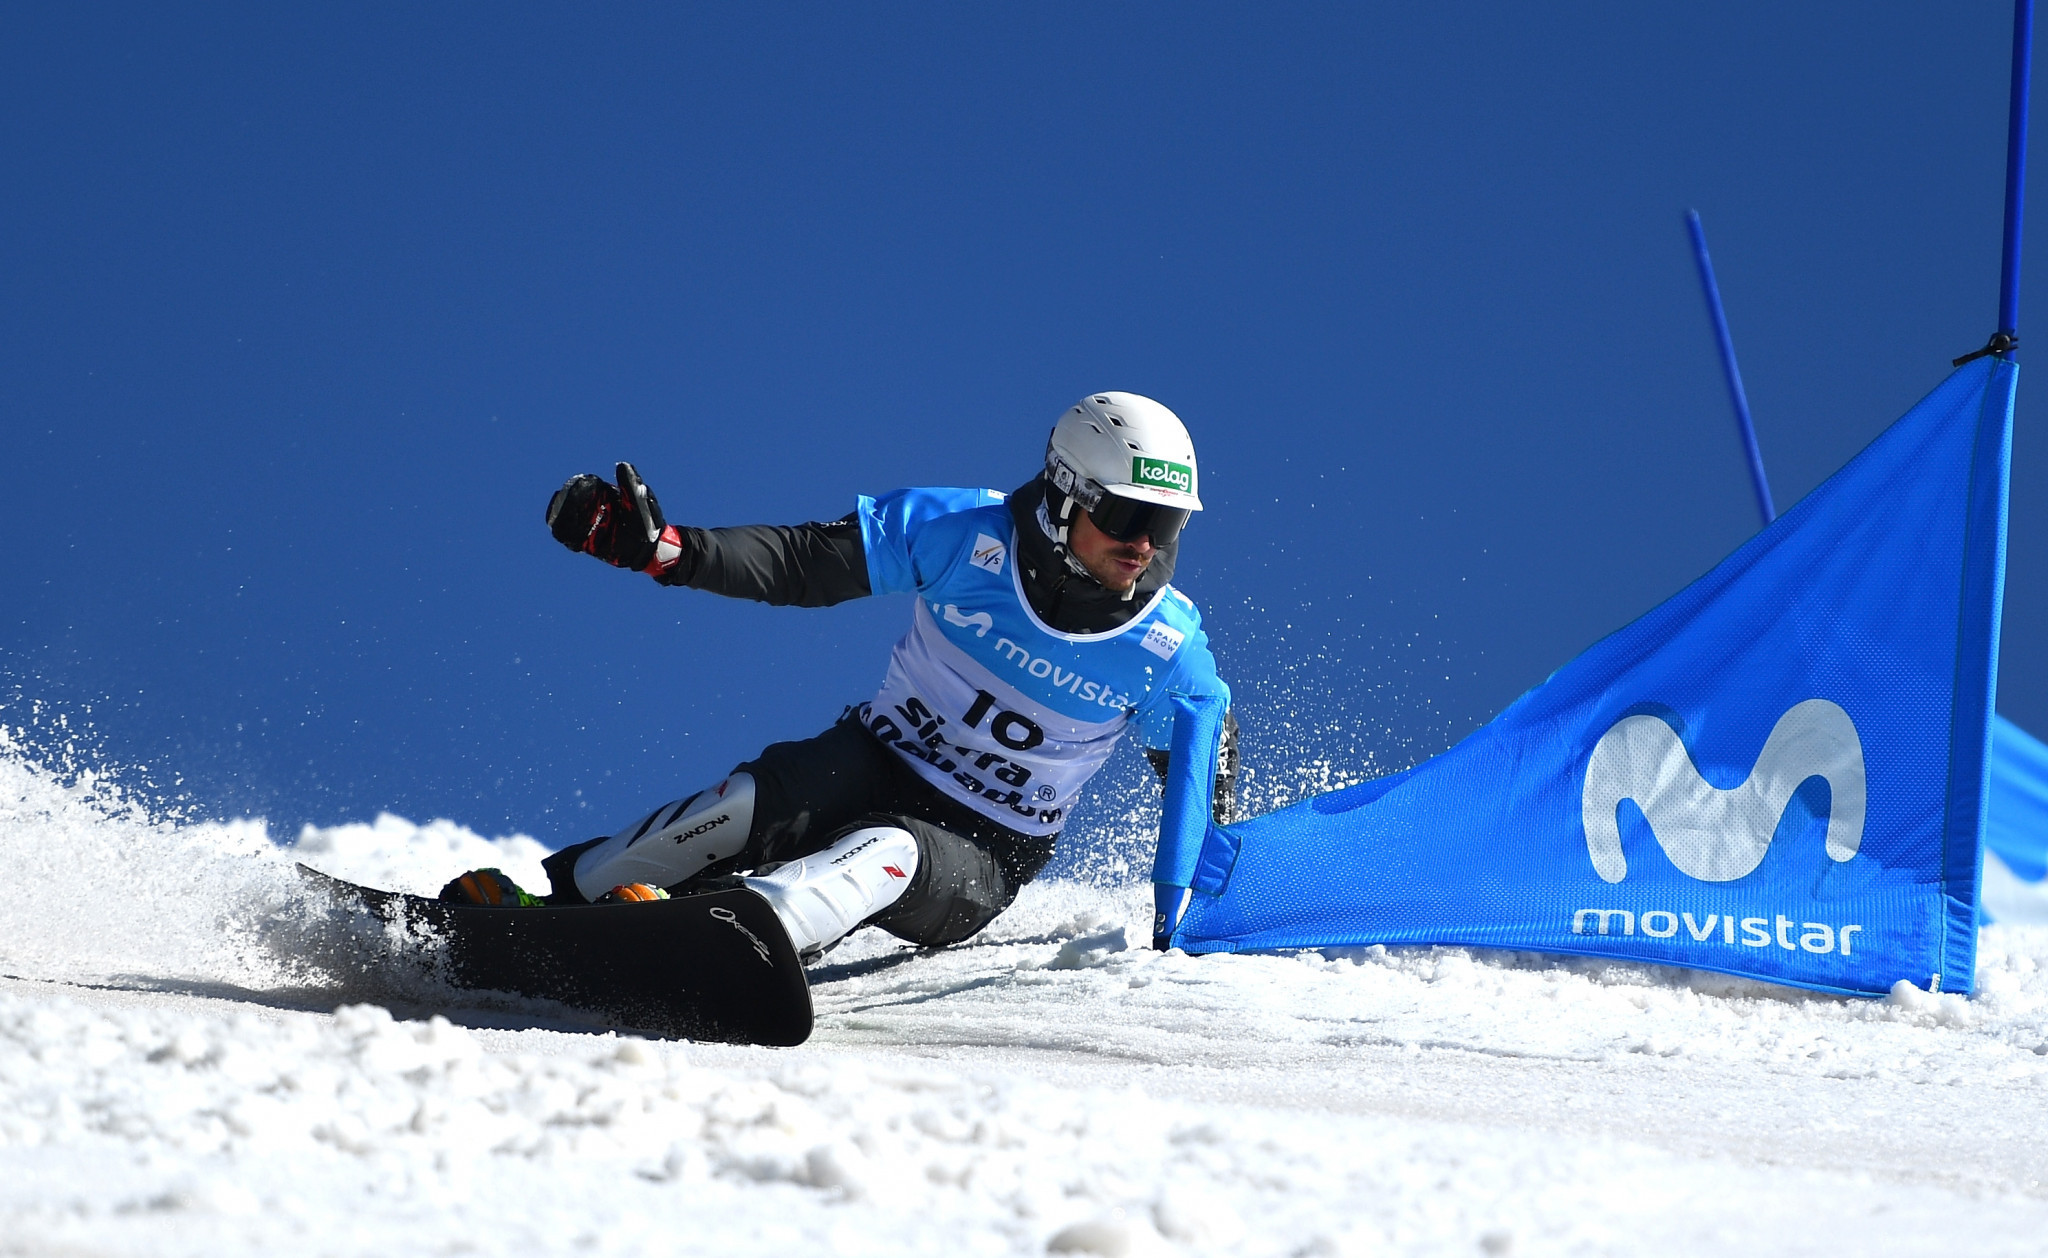 Alexander Payer won the men's event in Italy ©Getty Images